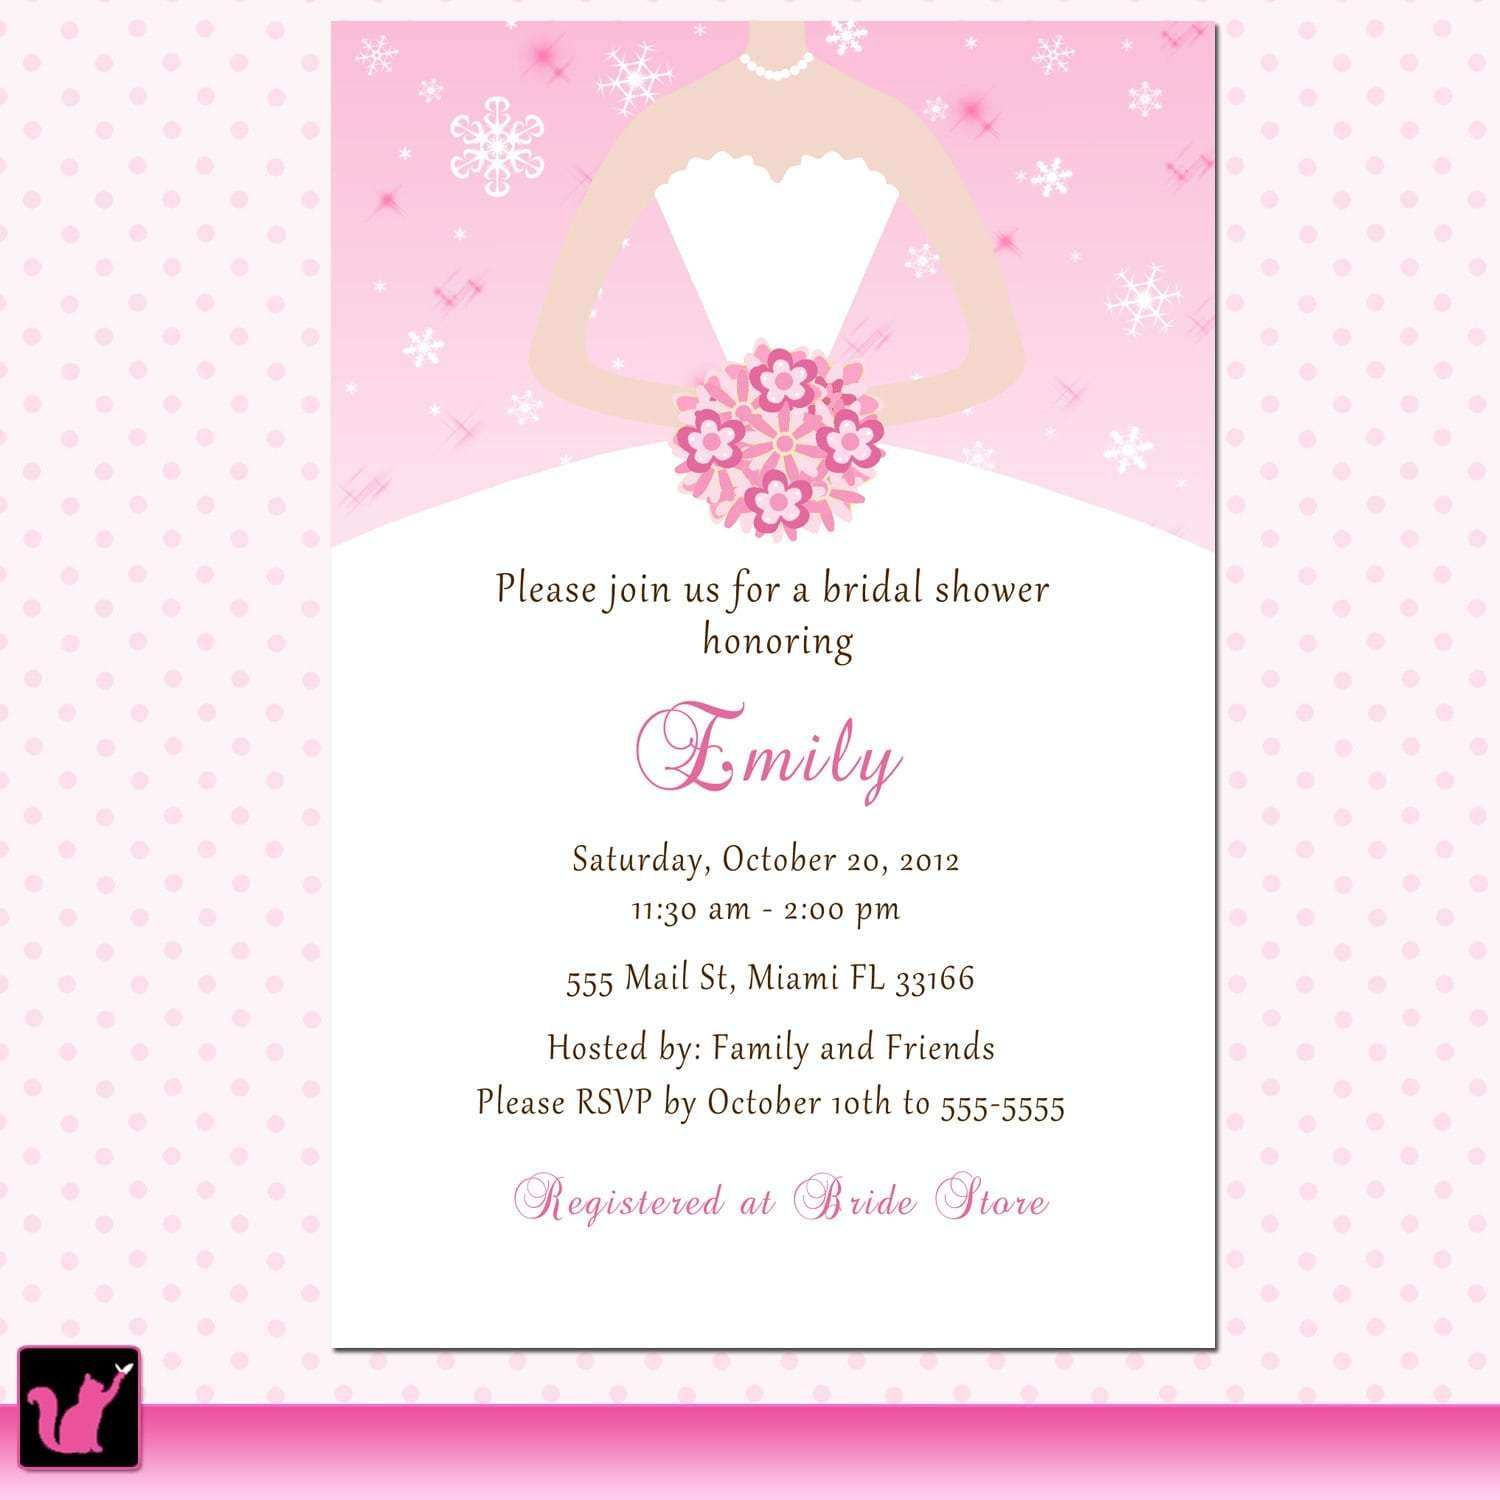 Quinceanera Card Printable – Ezzy - Free Printable Quinceanera Invitations